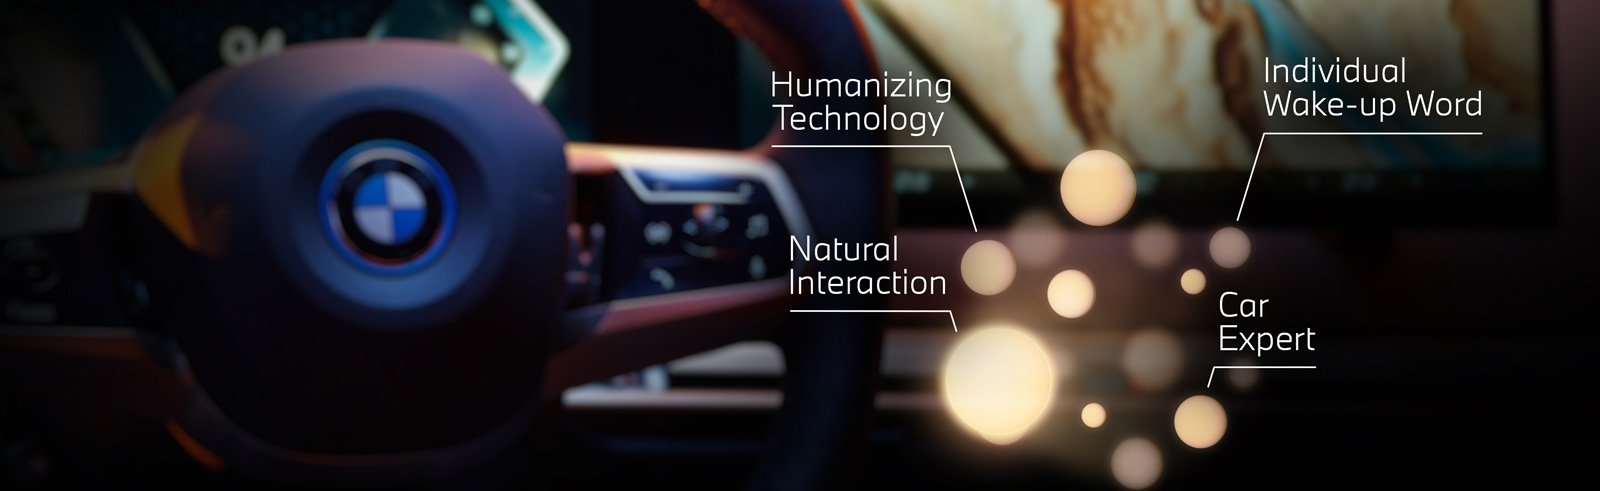 The 8 Gen BMW iDrive is unveiled, relies entirely on artificial intelligence (AI)